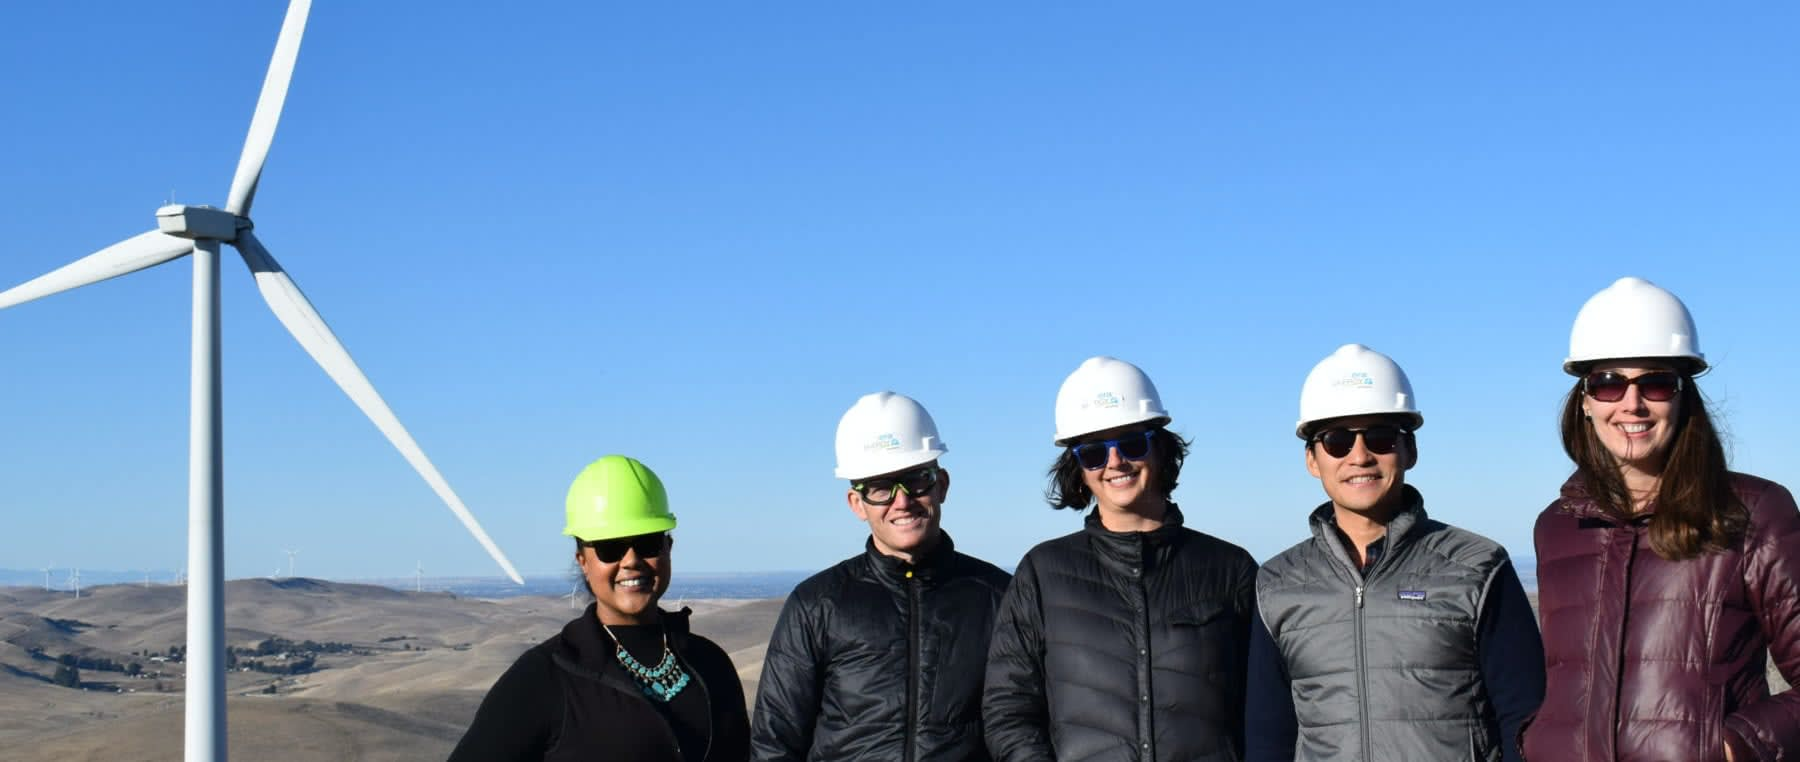 Five employees from the the EBCE team posing in front of a wind turbine with hard hats and sunglasses on.